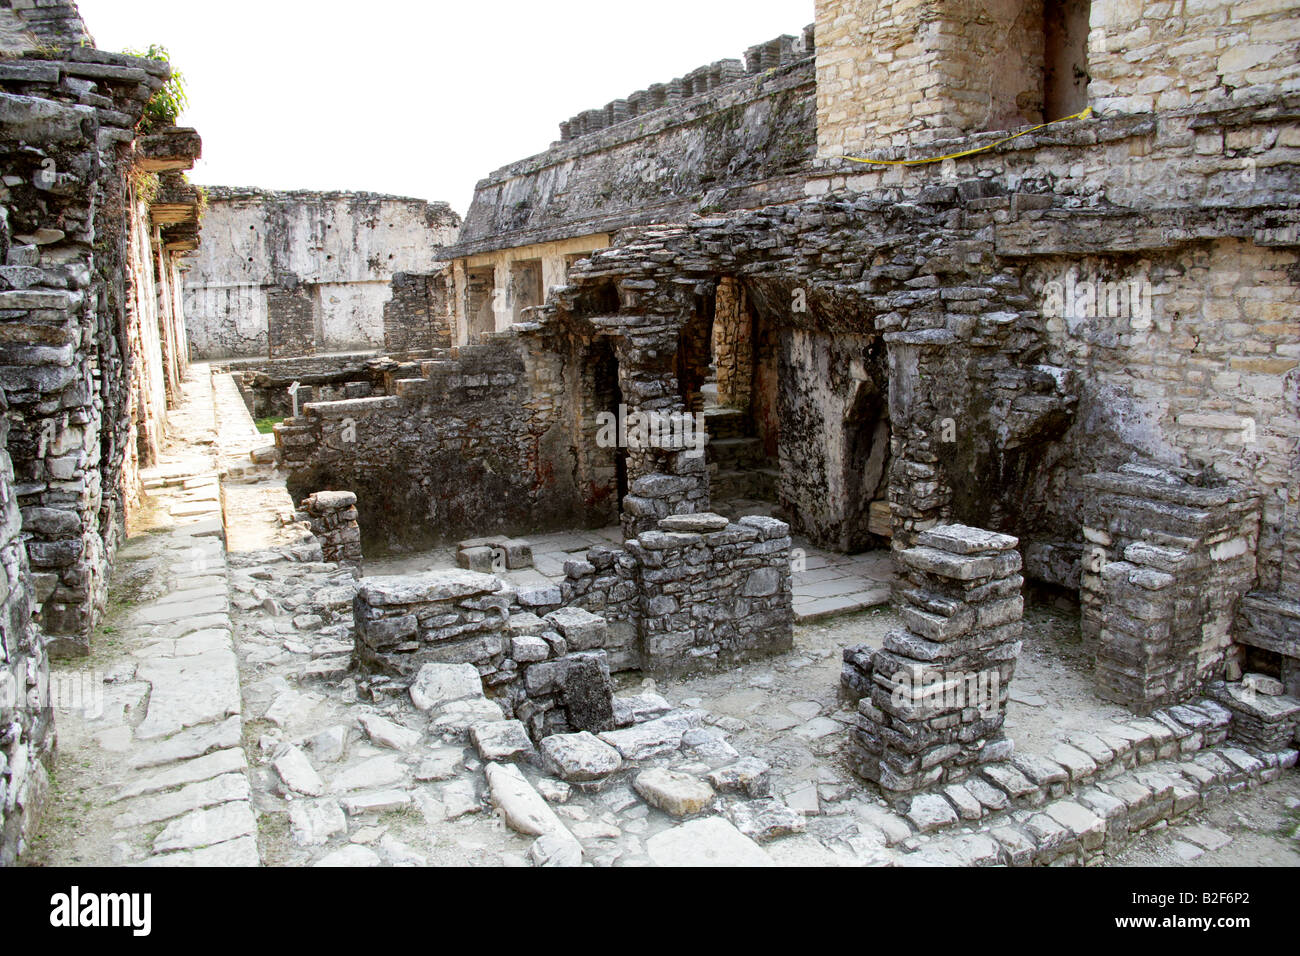 The Palace, Palenque Archeological Site, Chiapas State, Mexico Stock Photo